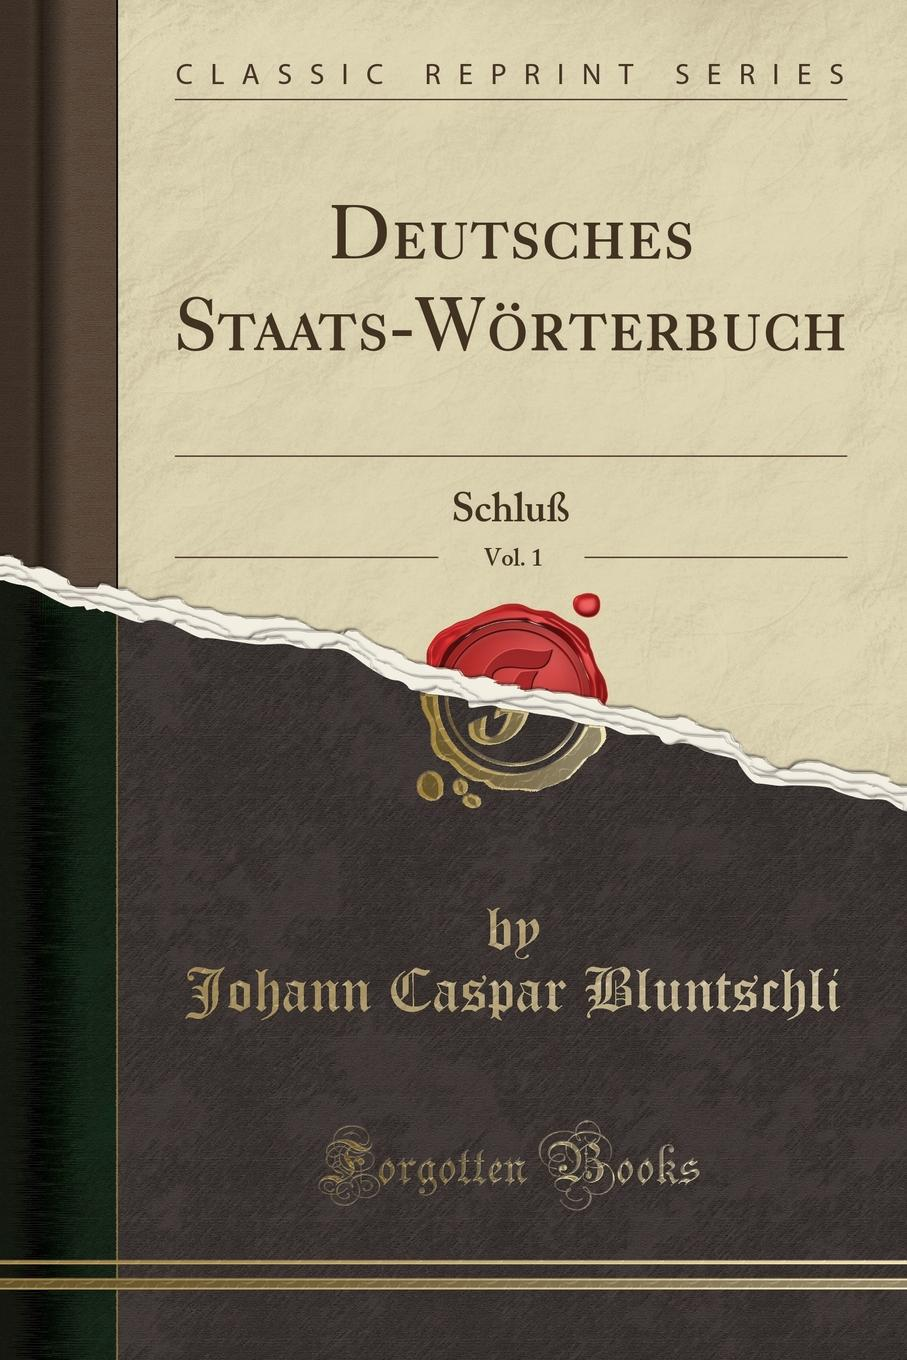 Johann Caspar Bluntschli Deutsches Staats-Worterbuch, Vol. 1. Schluss (Classic Reprint)